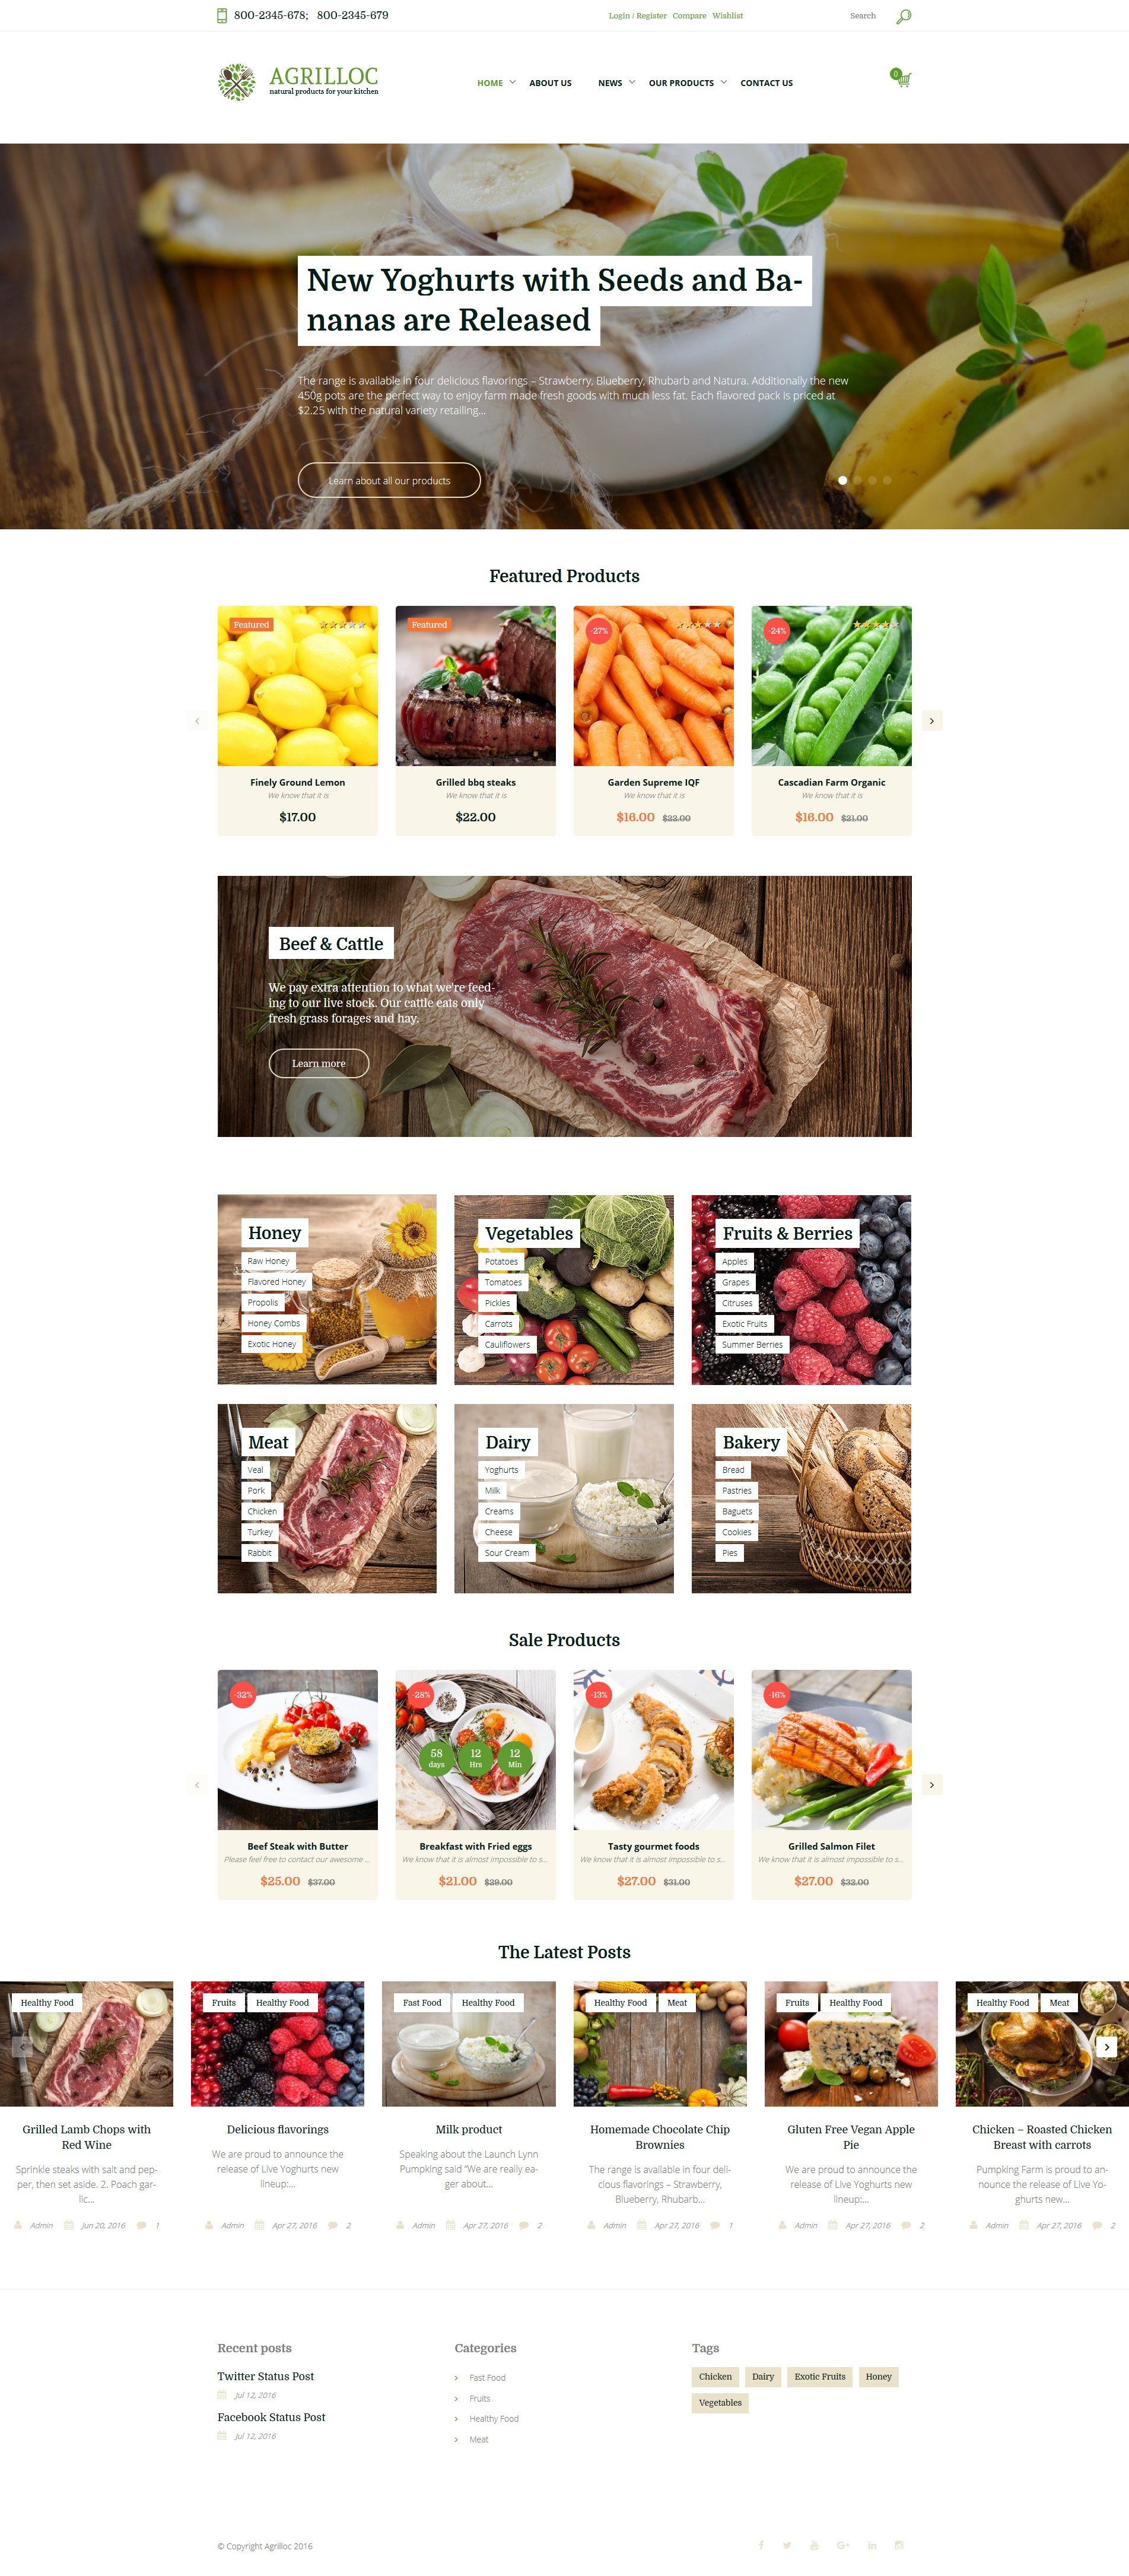 Agrilloc - Agricultural Supply & Farm Foods №58670 - скриншот